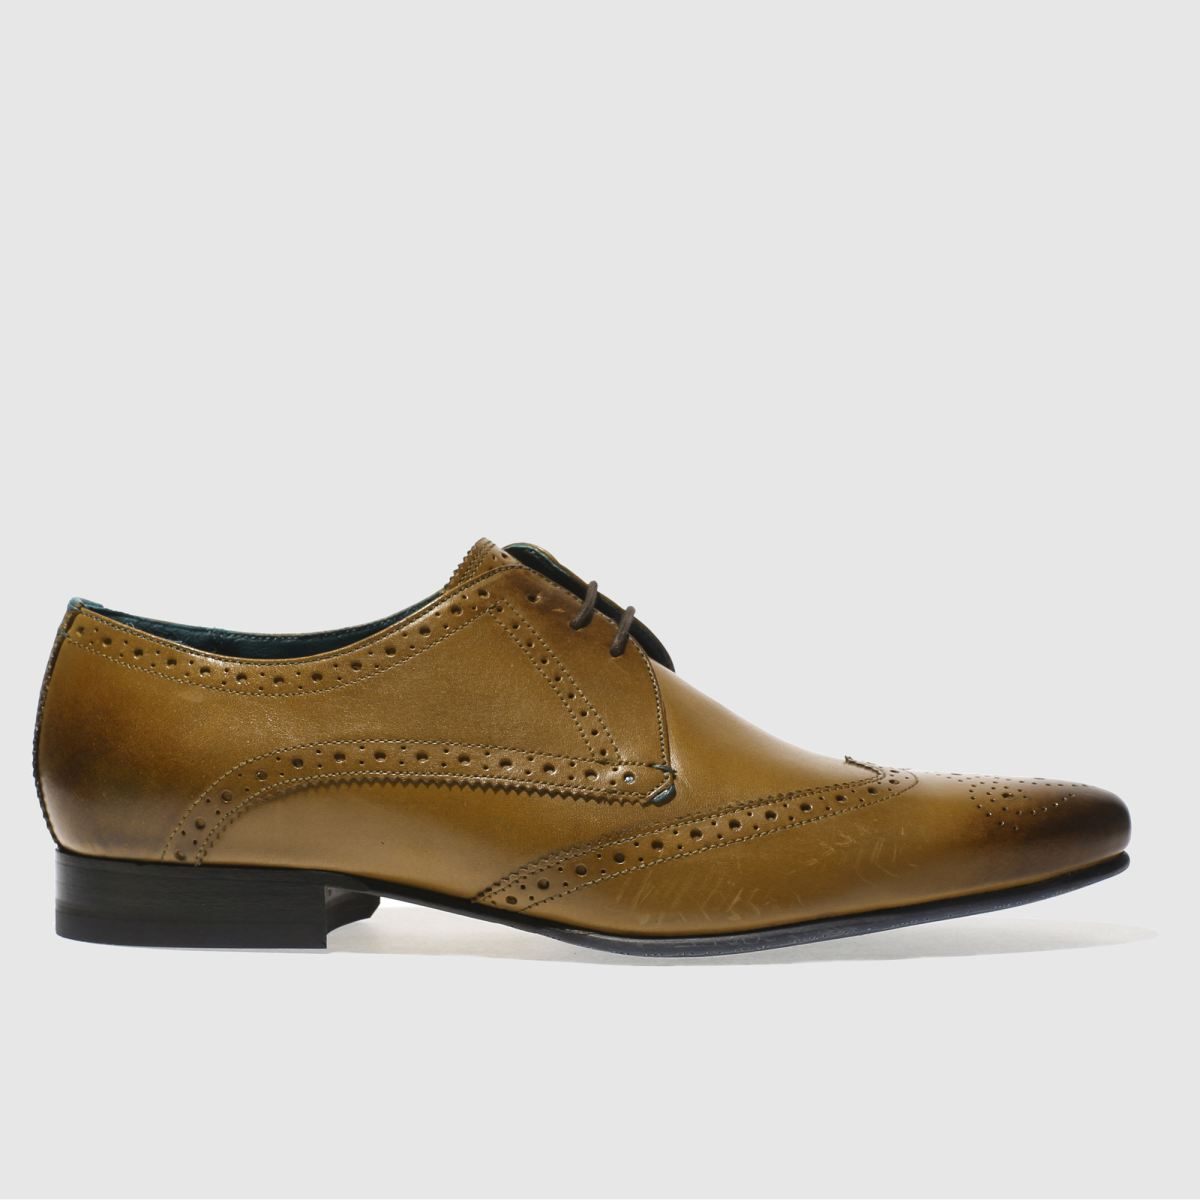 Ted Baker Tan Hosei Shoes